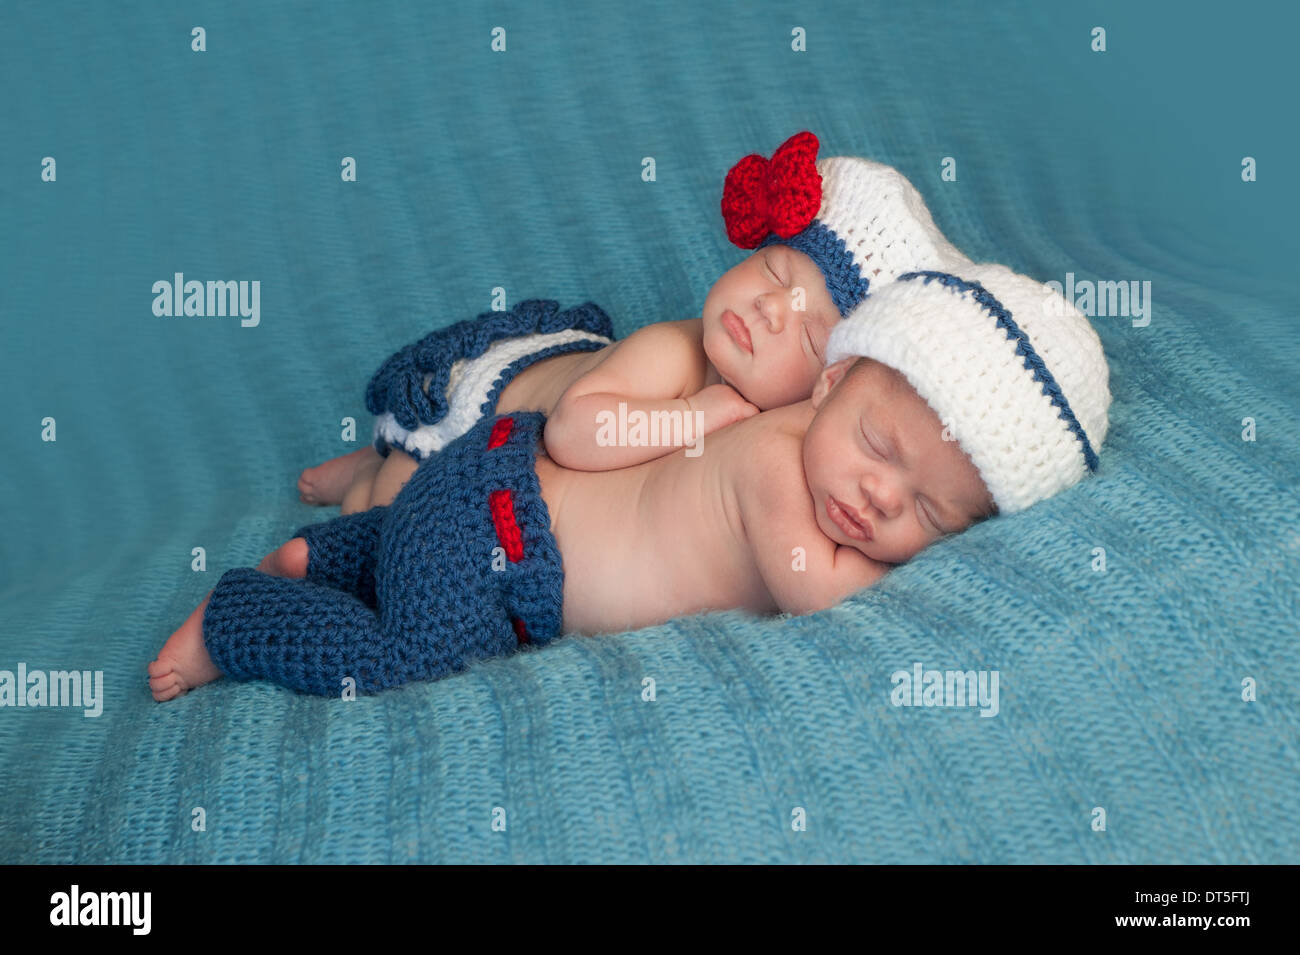 Twin Stroller Usa Fraternal Twins Girl Stock Photos Fraternal Twins Girl